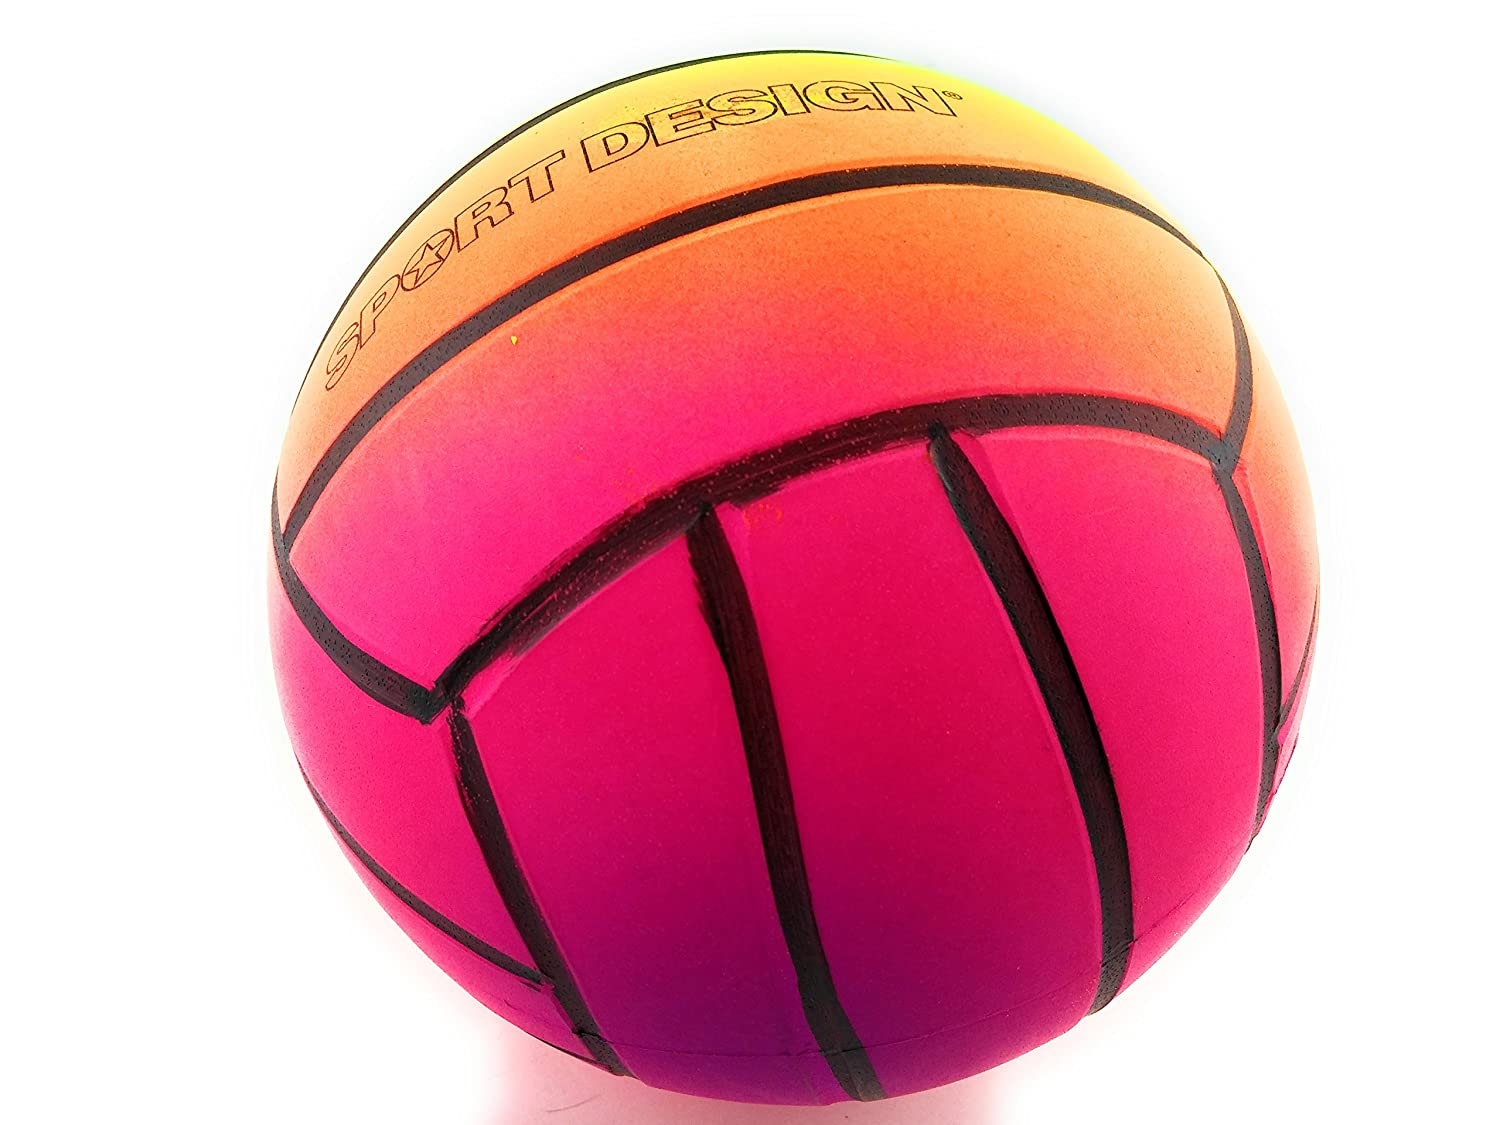 Sport Design Classic Mini Inflated Volleyball, Assorted Colour, 1PC B01ENM3R6O